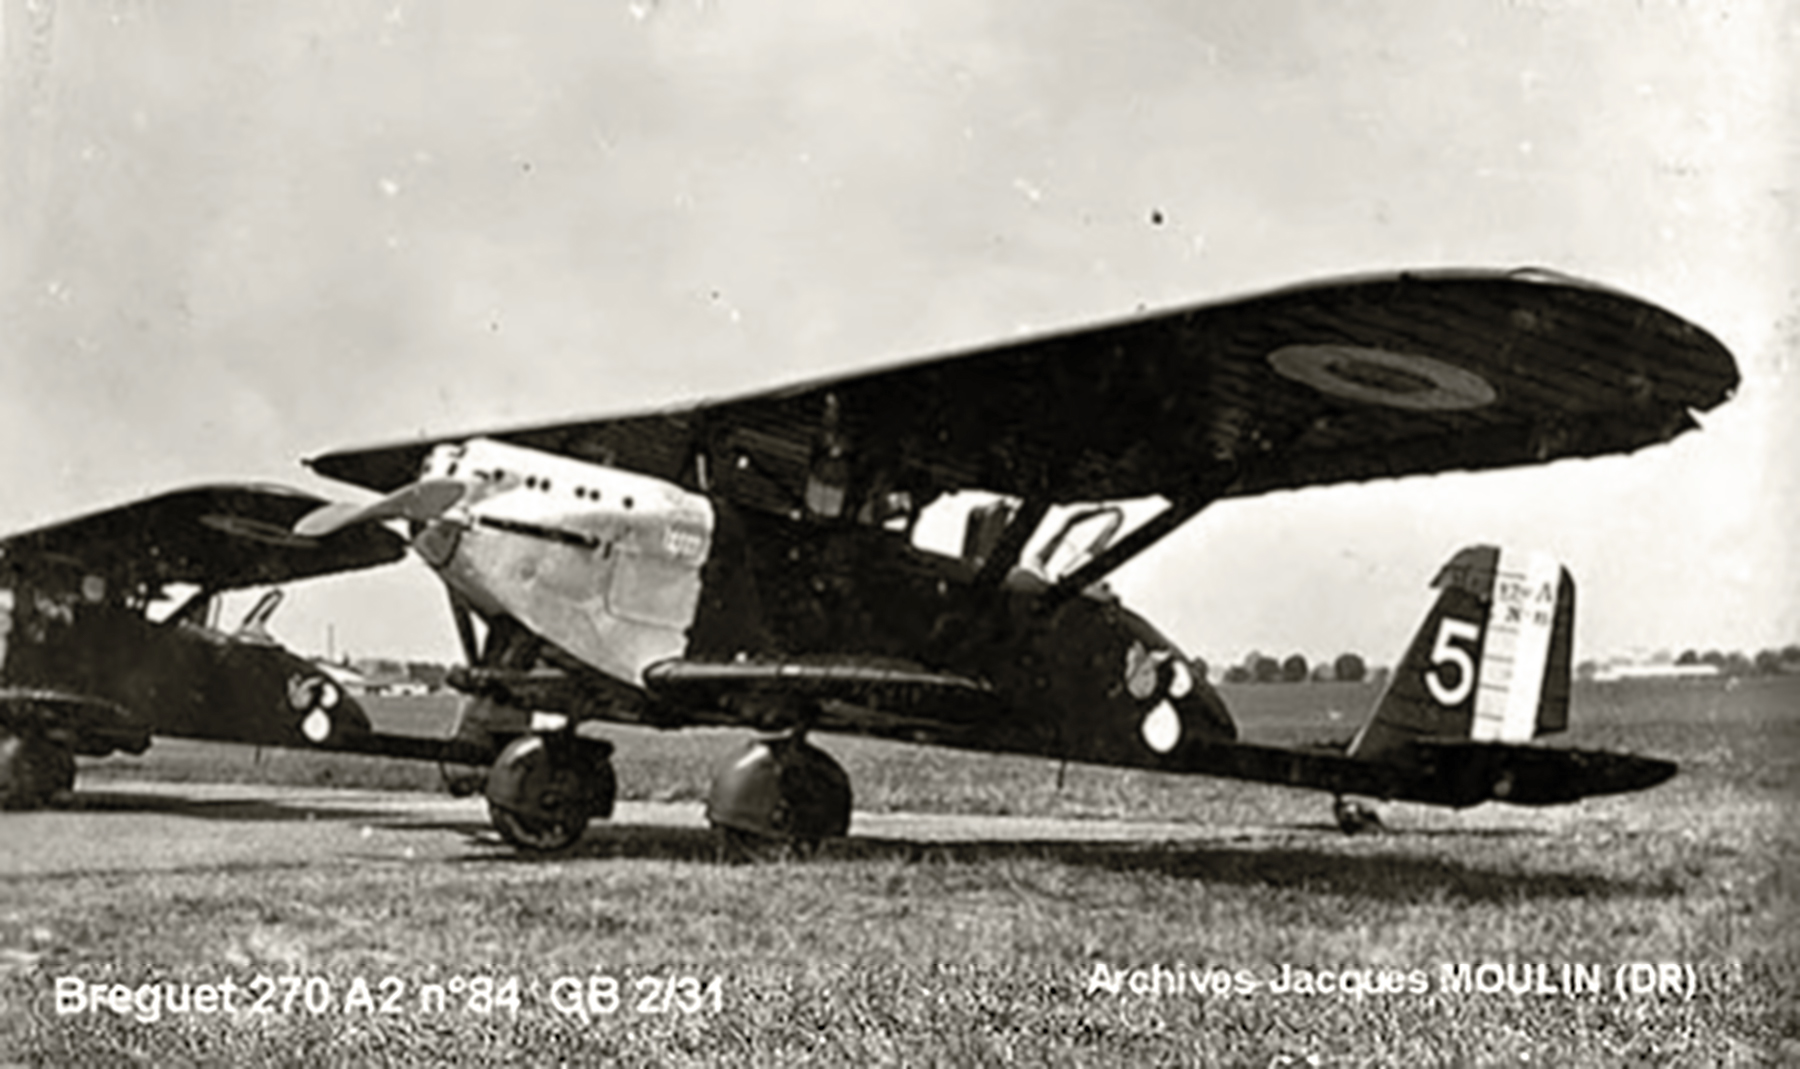 French Airforce Breguet 270A2 GB2.31 White 5 sn84 awaits its next op France 1940 01